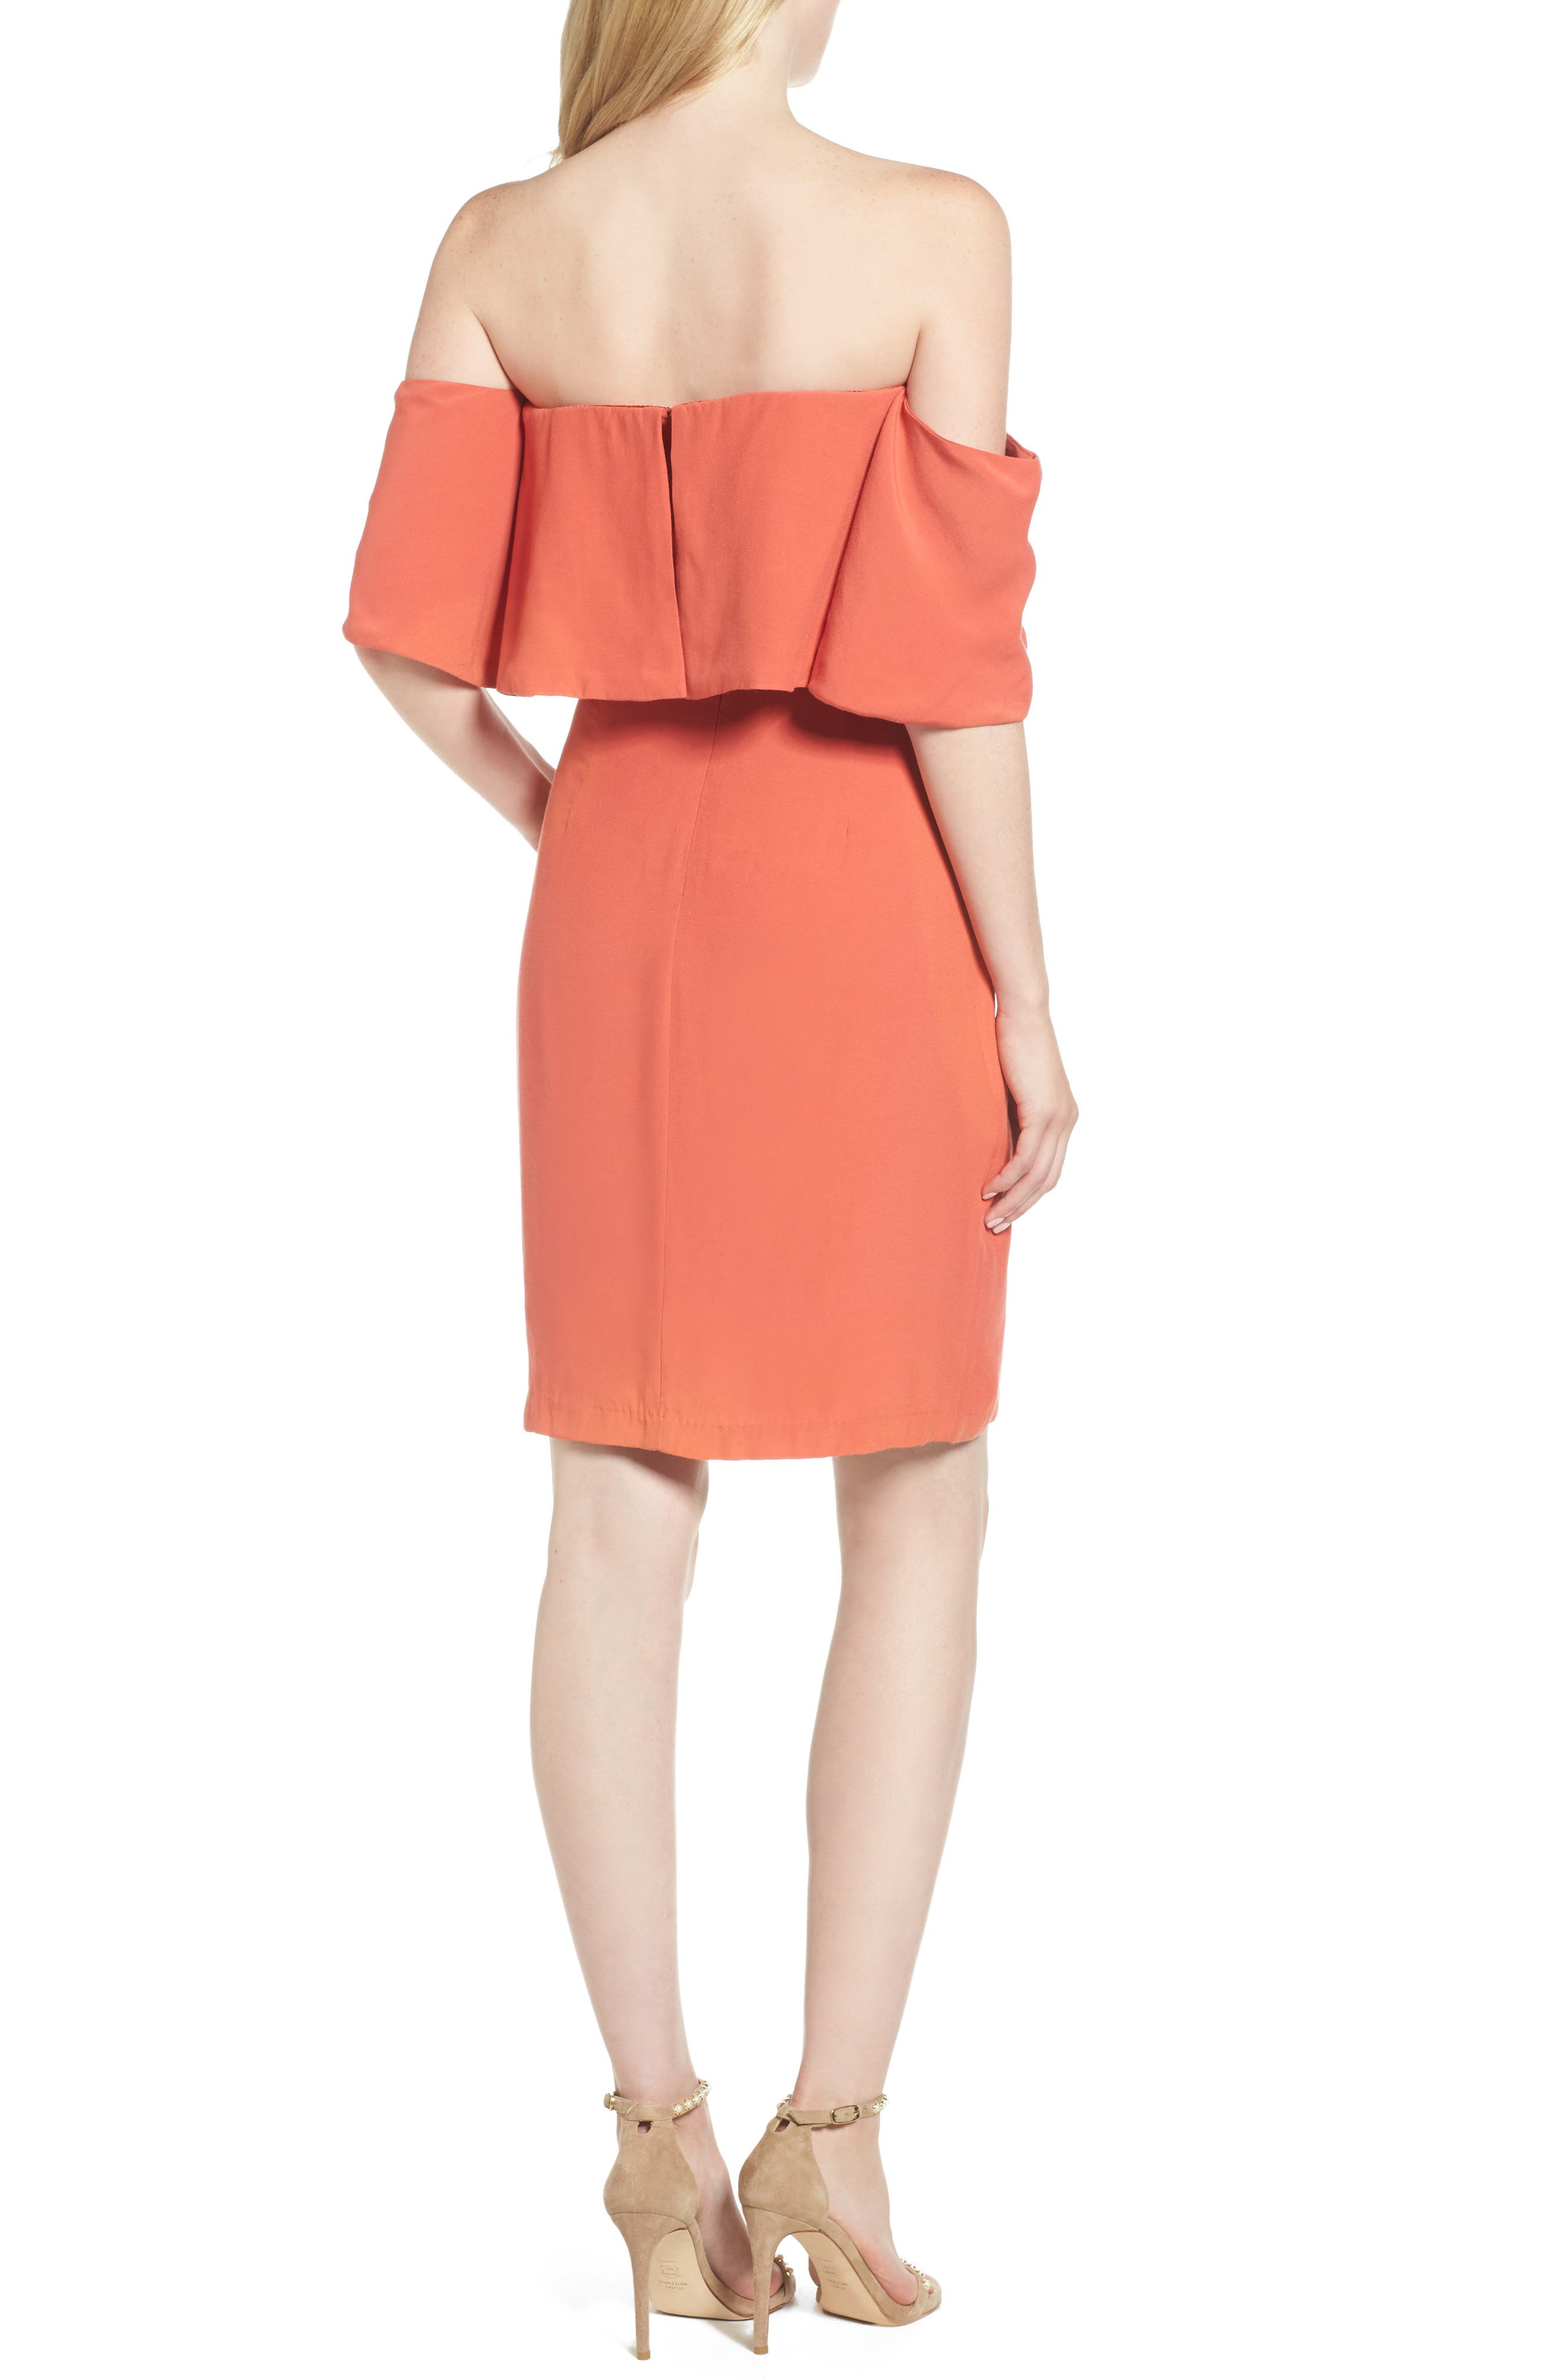 Rudy Off the Shoulder Shift Dress,                             Alternate thumbnail 2, color,                             Persimmon Red